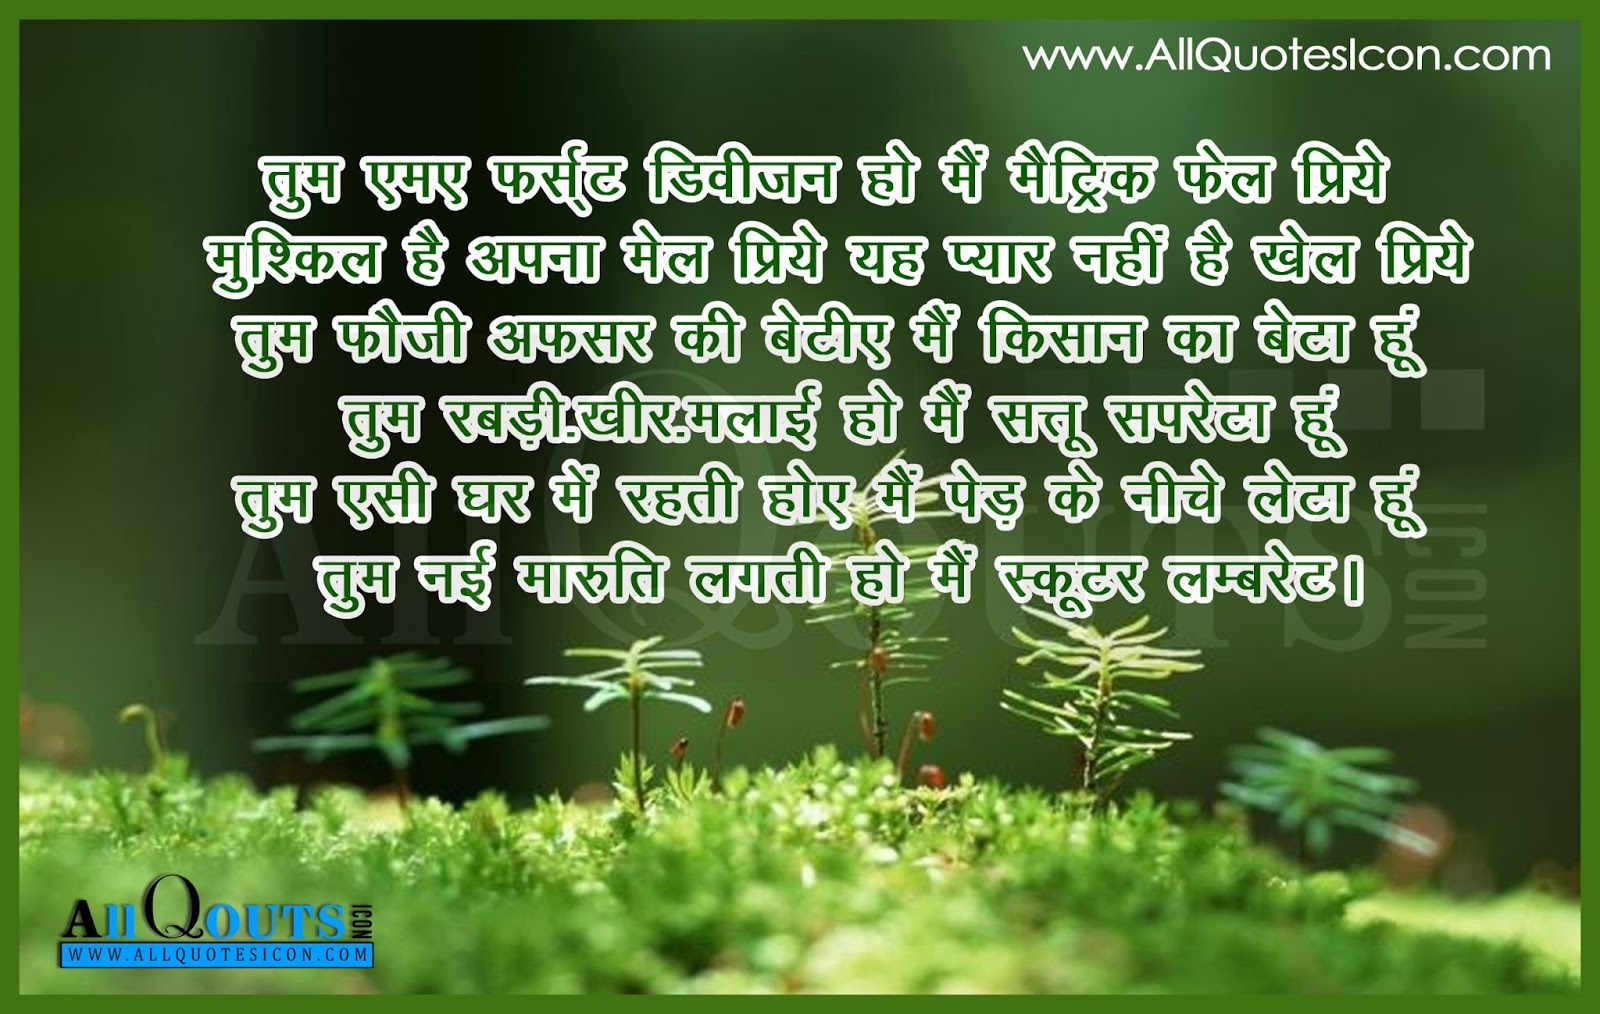 Funny Shayari in Hindi HD Wallpapers Best Life ...